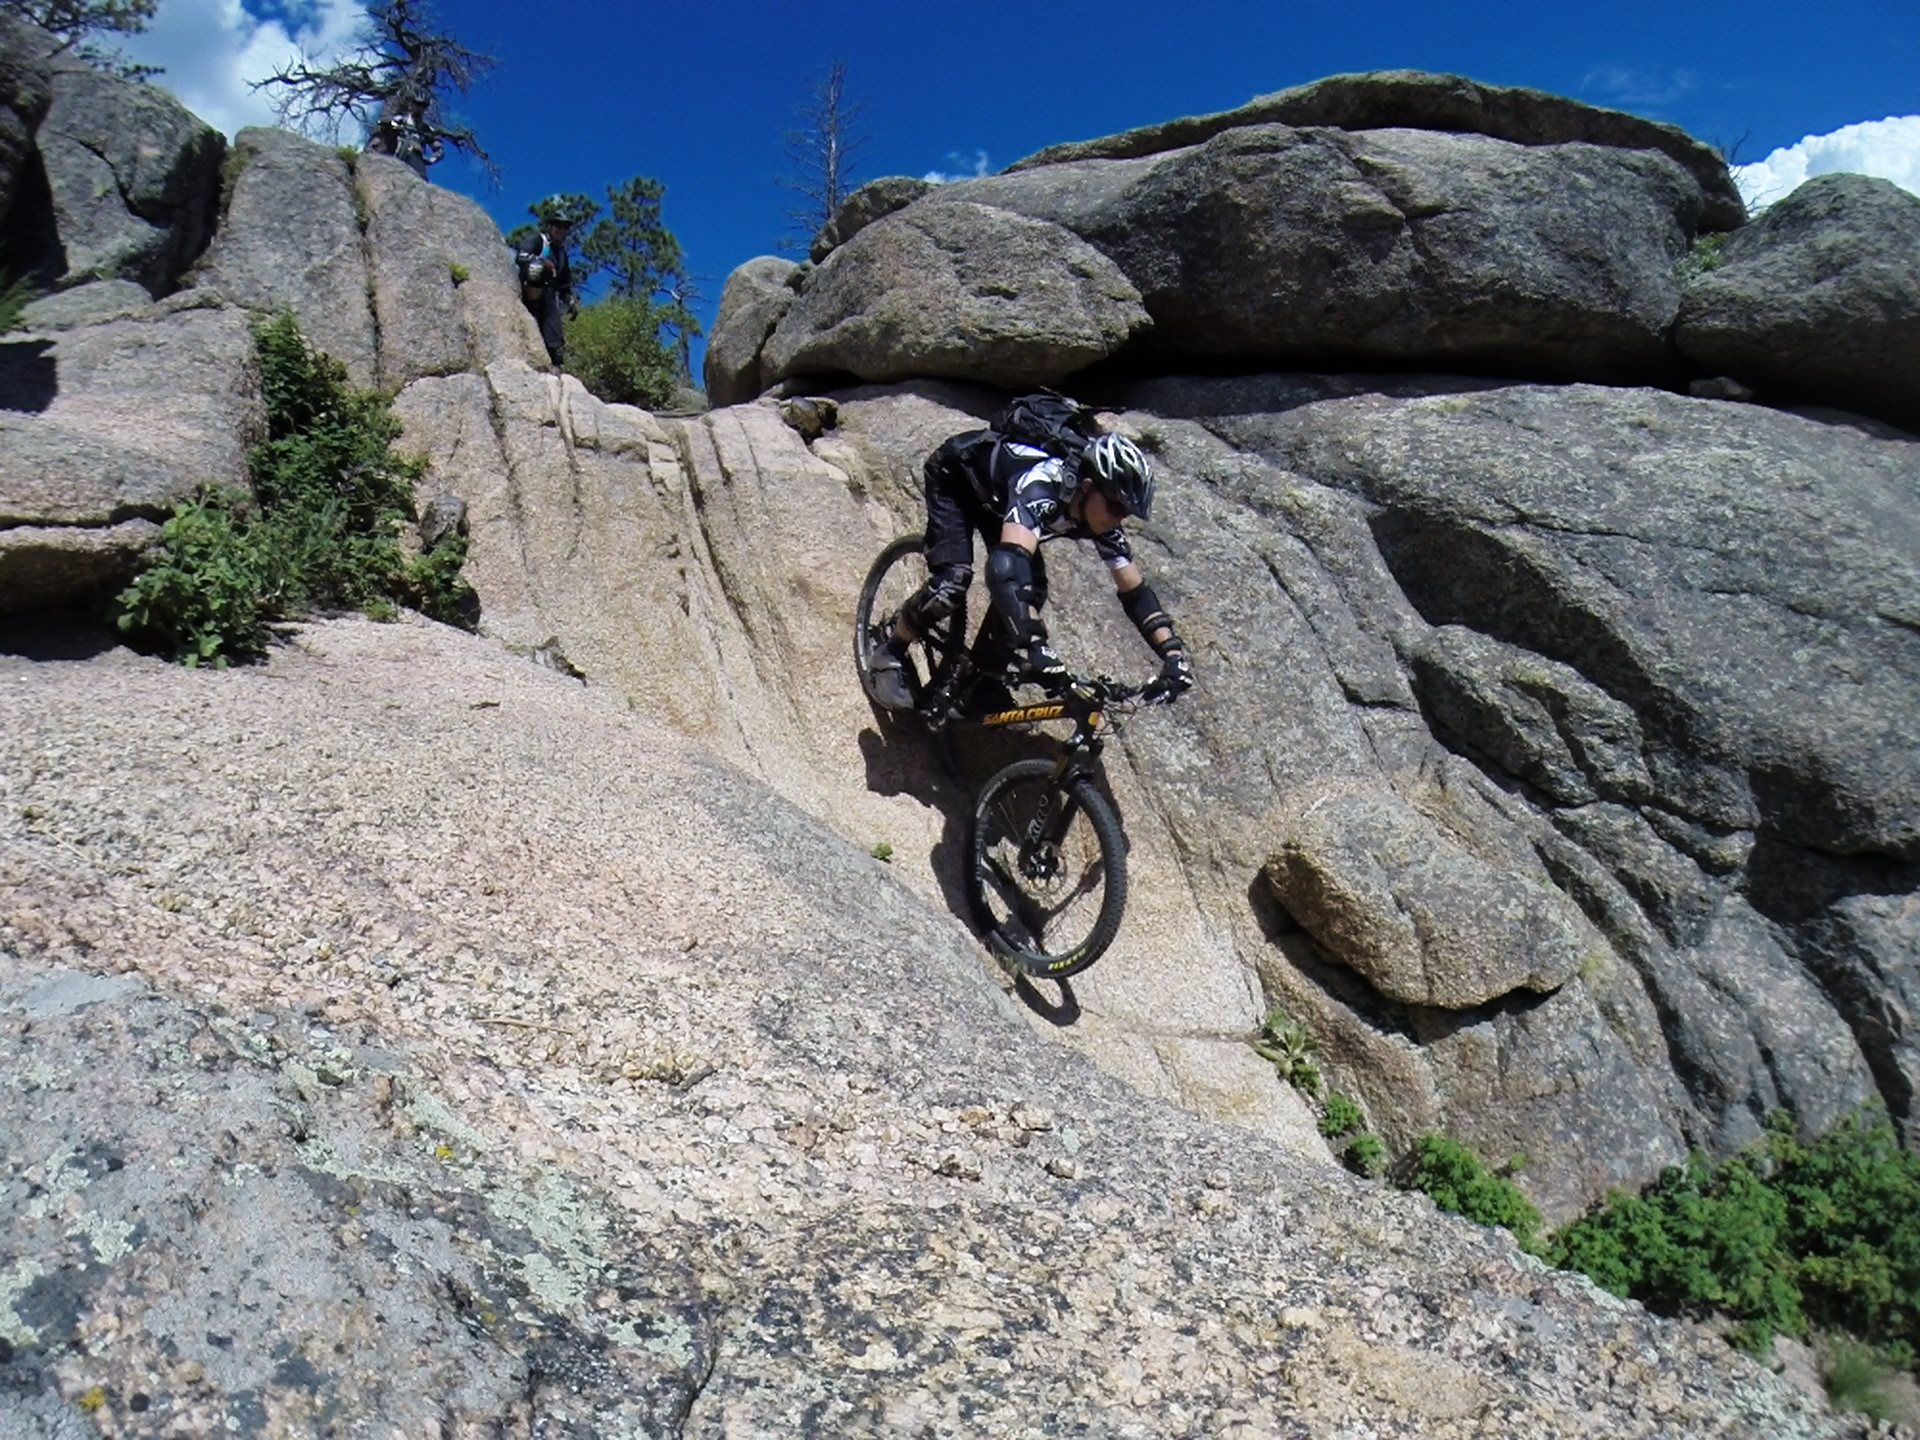 There are some seriously talented riders in Denver BOMB. Adam H drops into the Slot Machine at Buffalo Creek